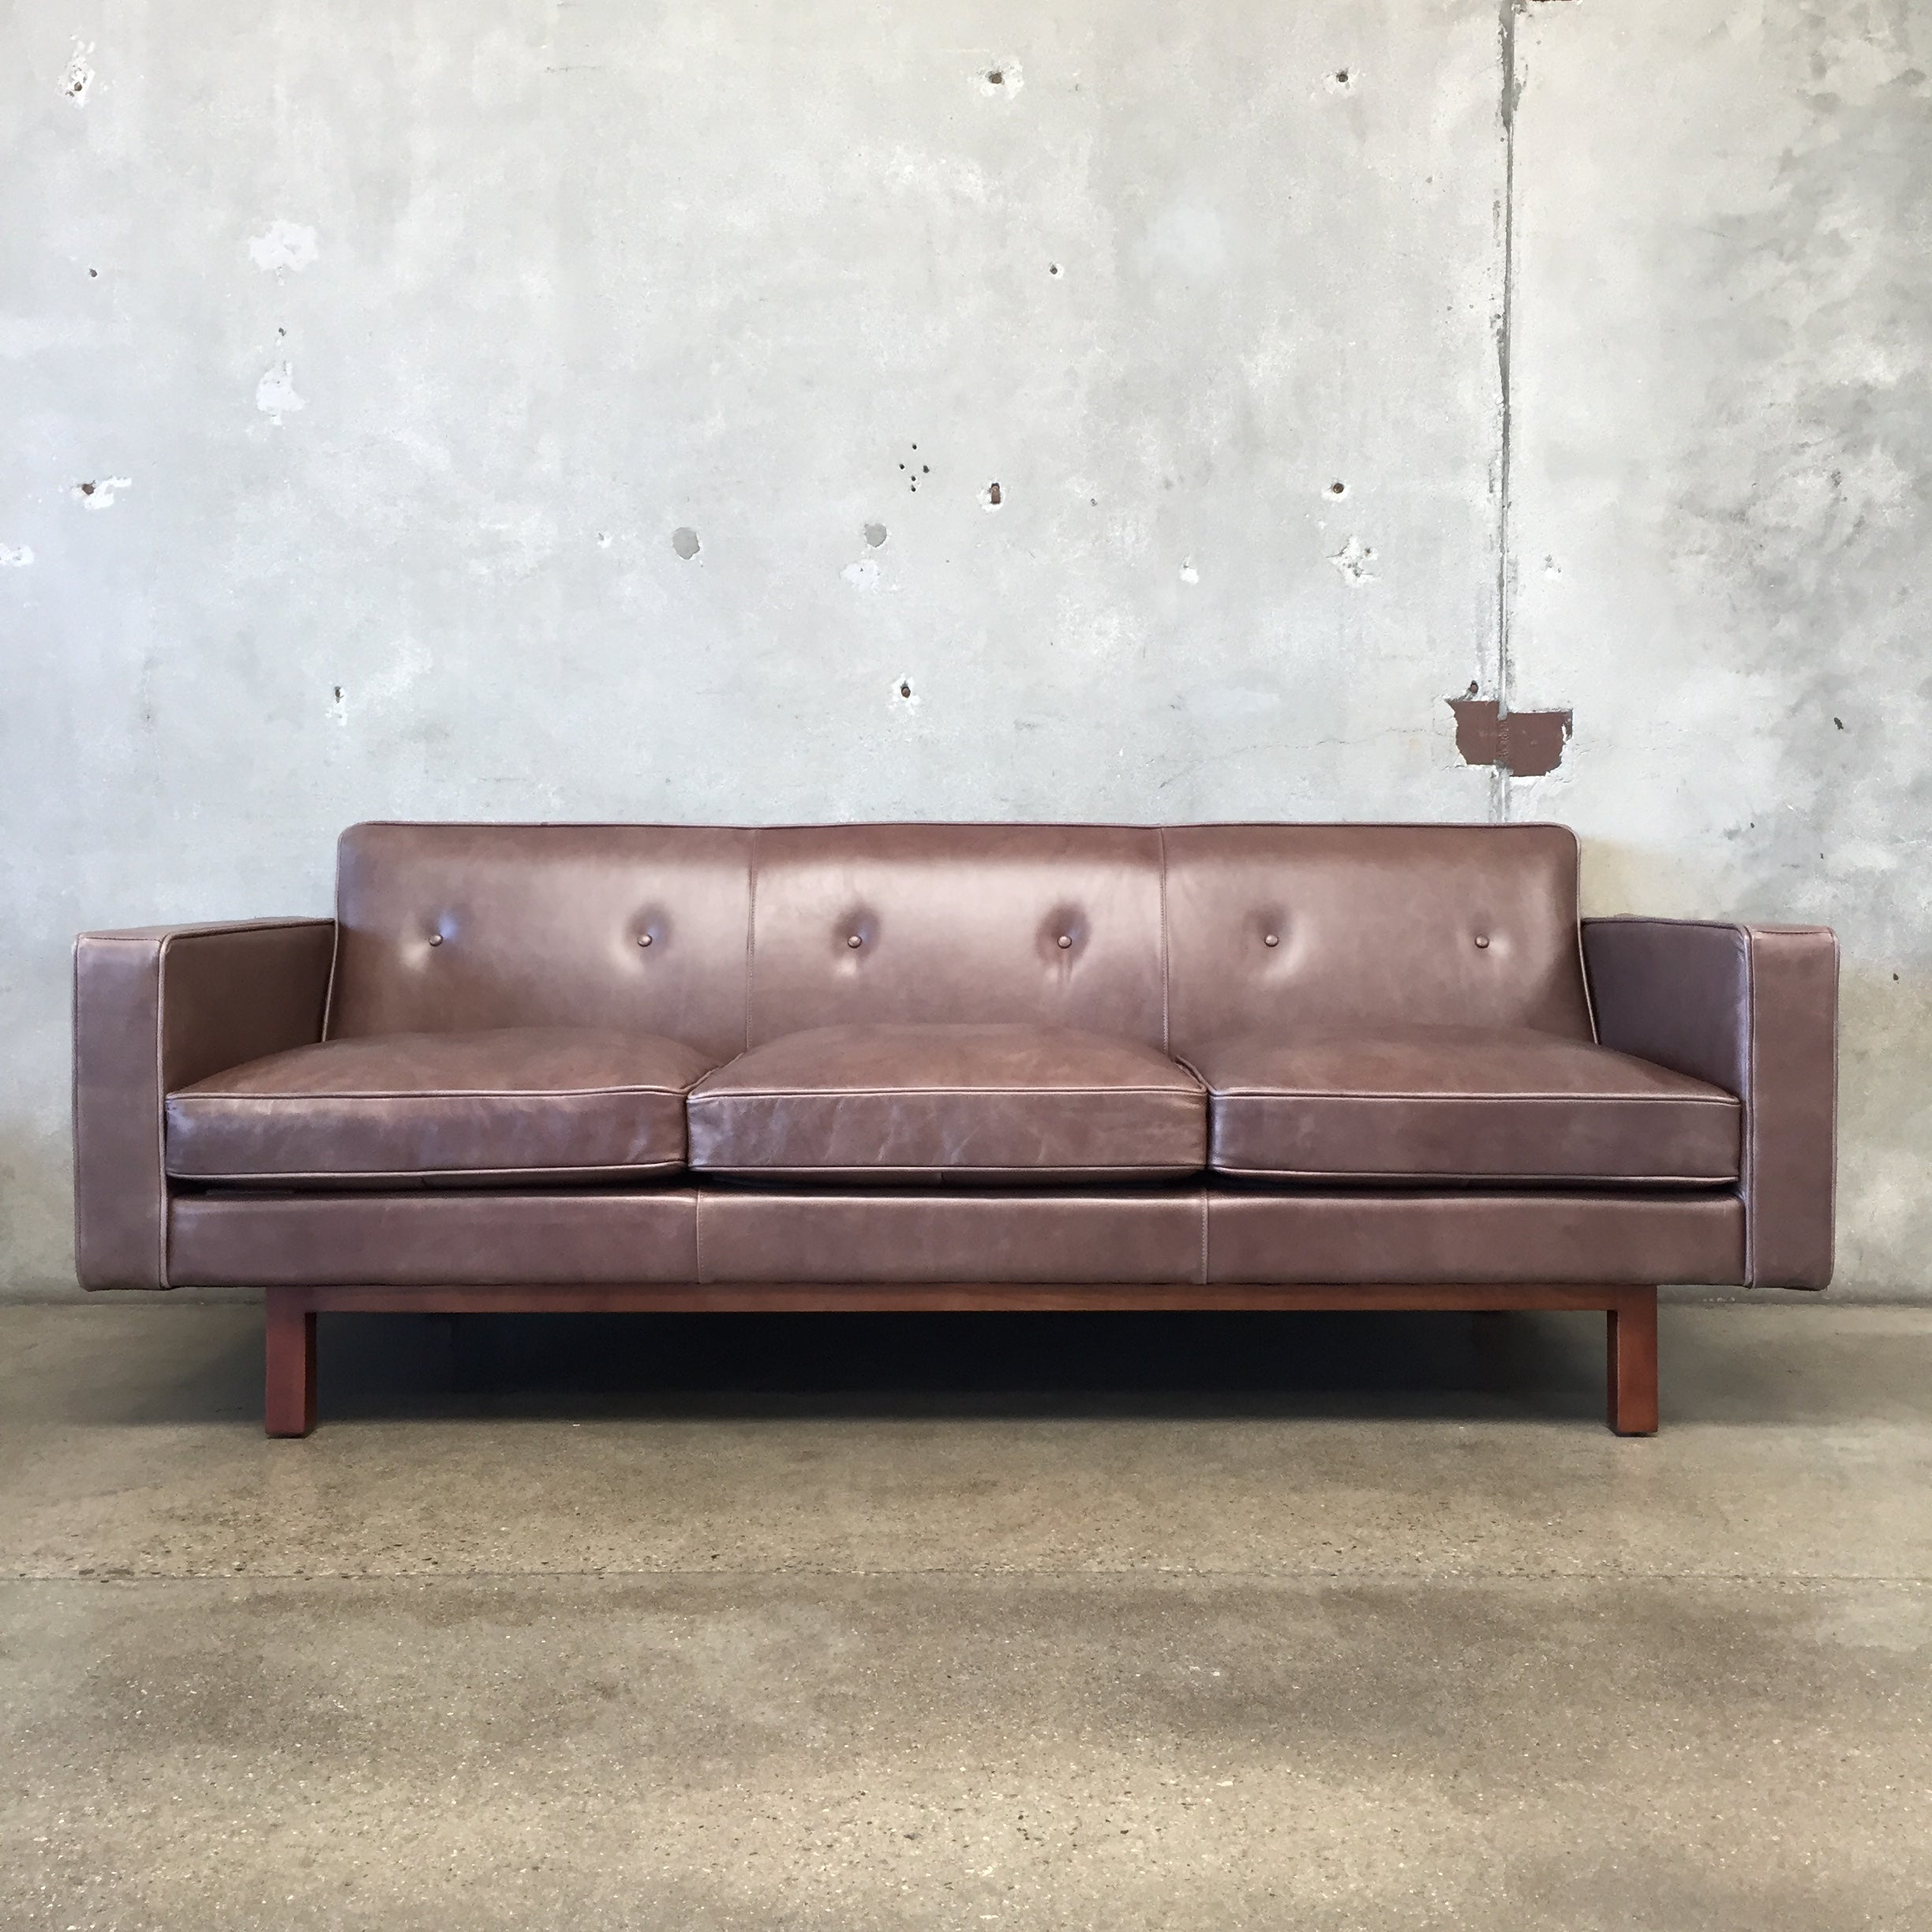 Groovy Embassy Leather Sofa By Gus Modern Ibusinesslaw Wood Chair Design Ideas Ibusinesslaworg